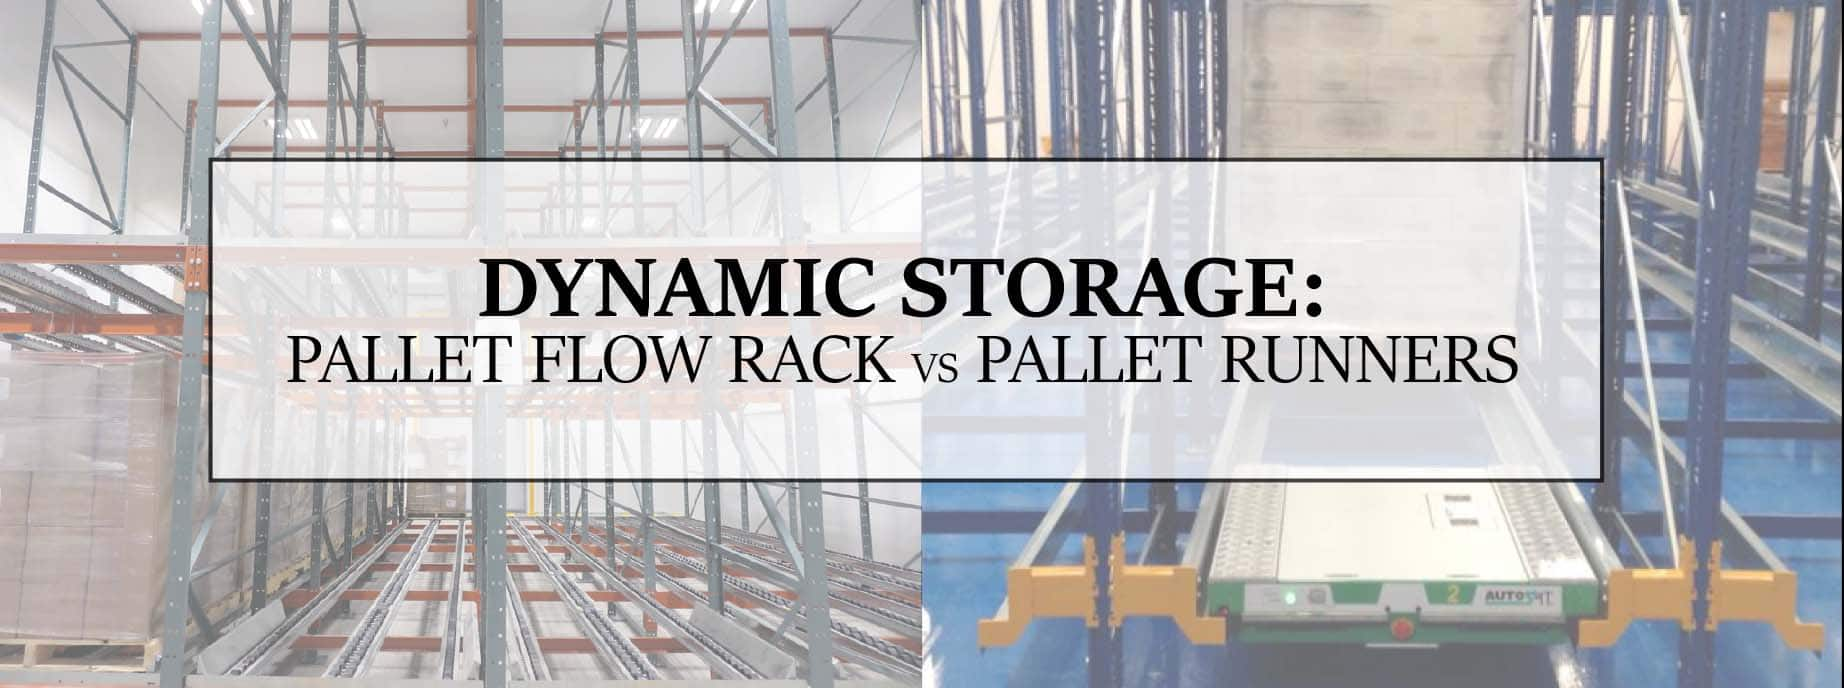 Dynamic Storage Systems - Pallet Flow vs Pallet Runners